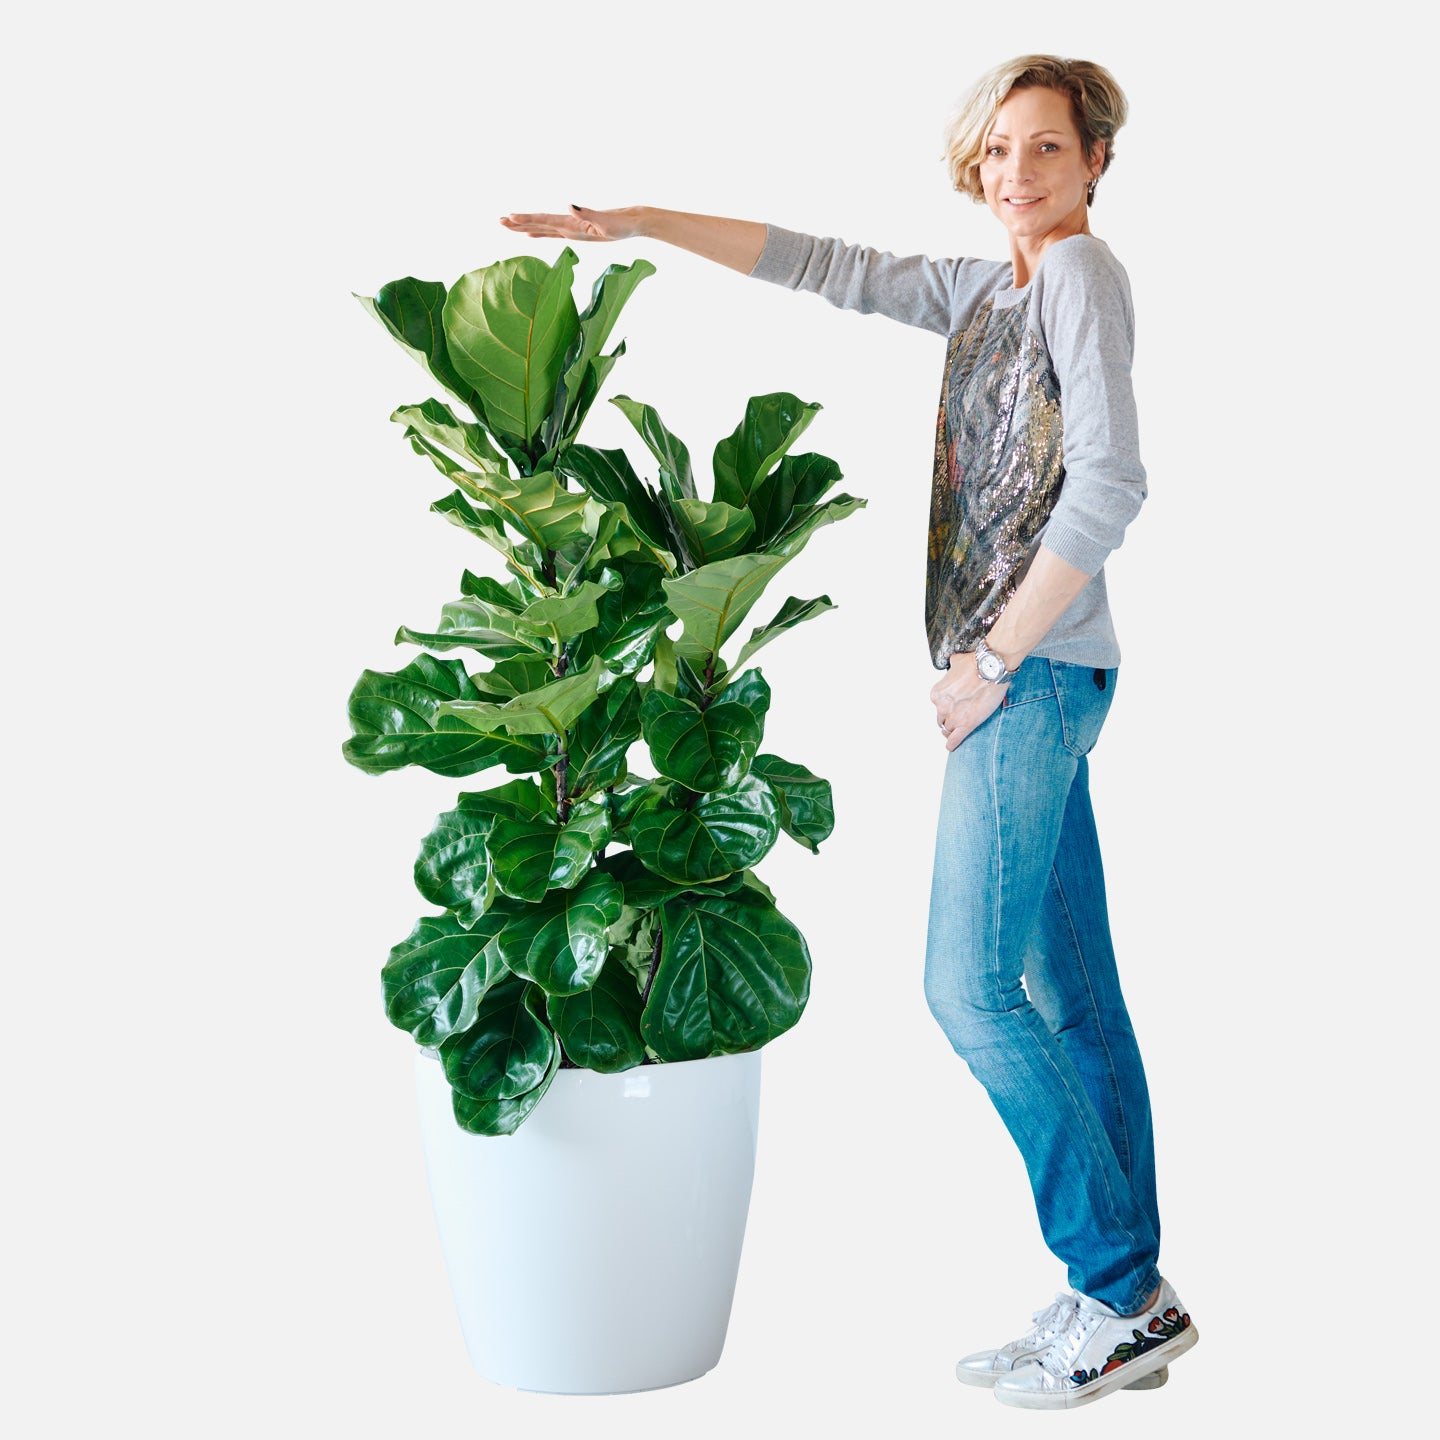 Fiddle Leaf Fig Bush In Classico 50 White Planter | My City Plants